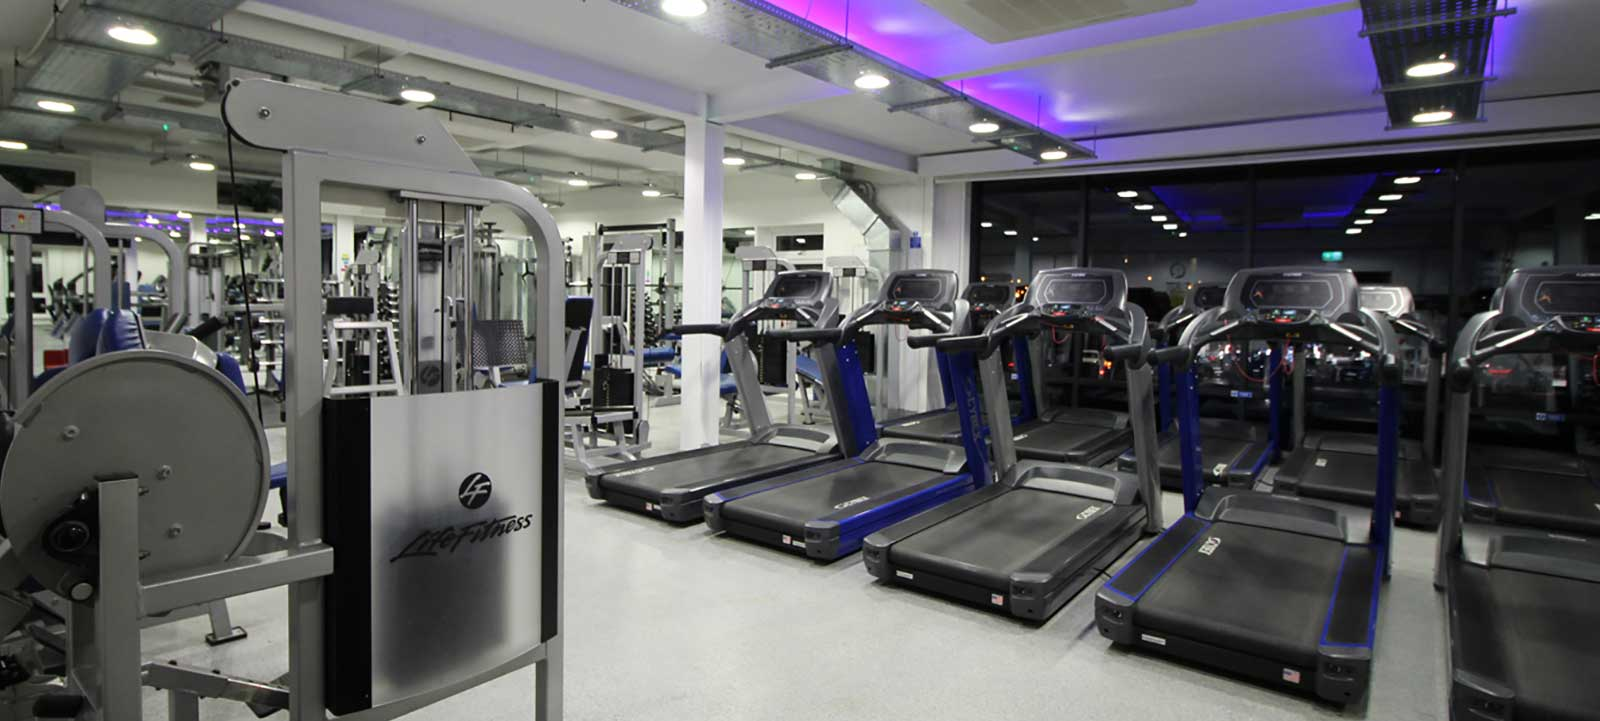 Cardio Room at Swift Fitness York